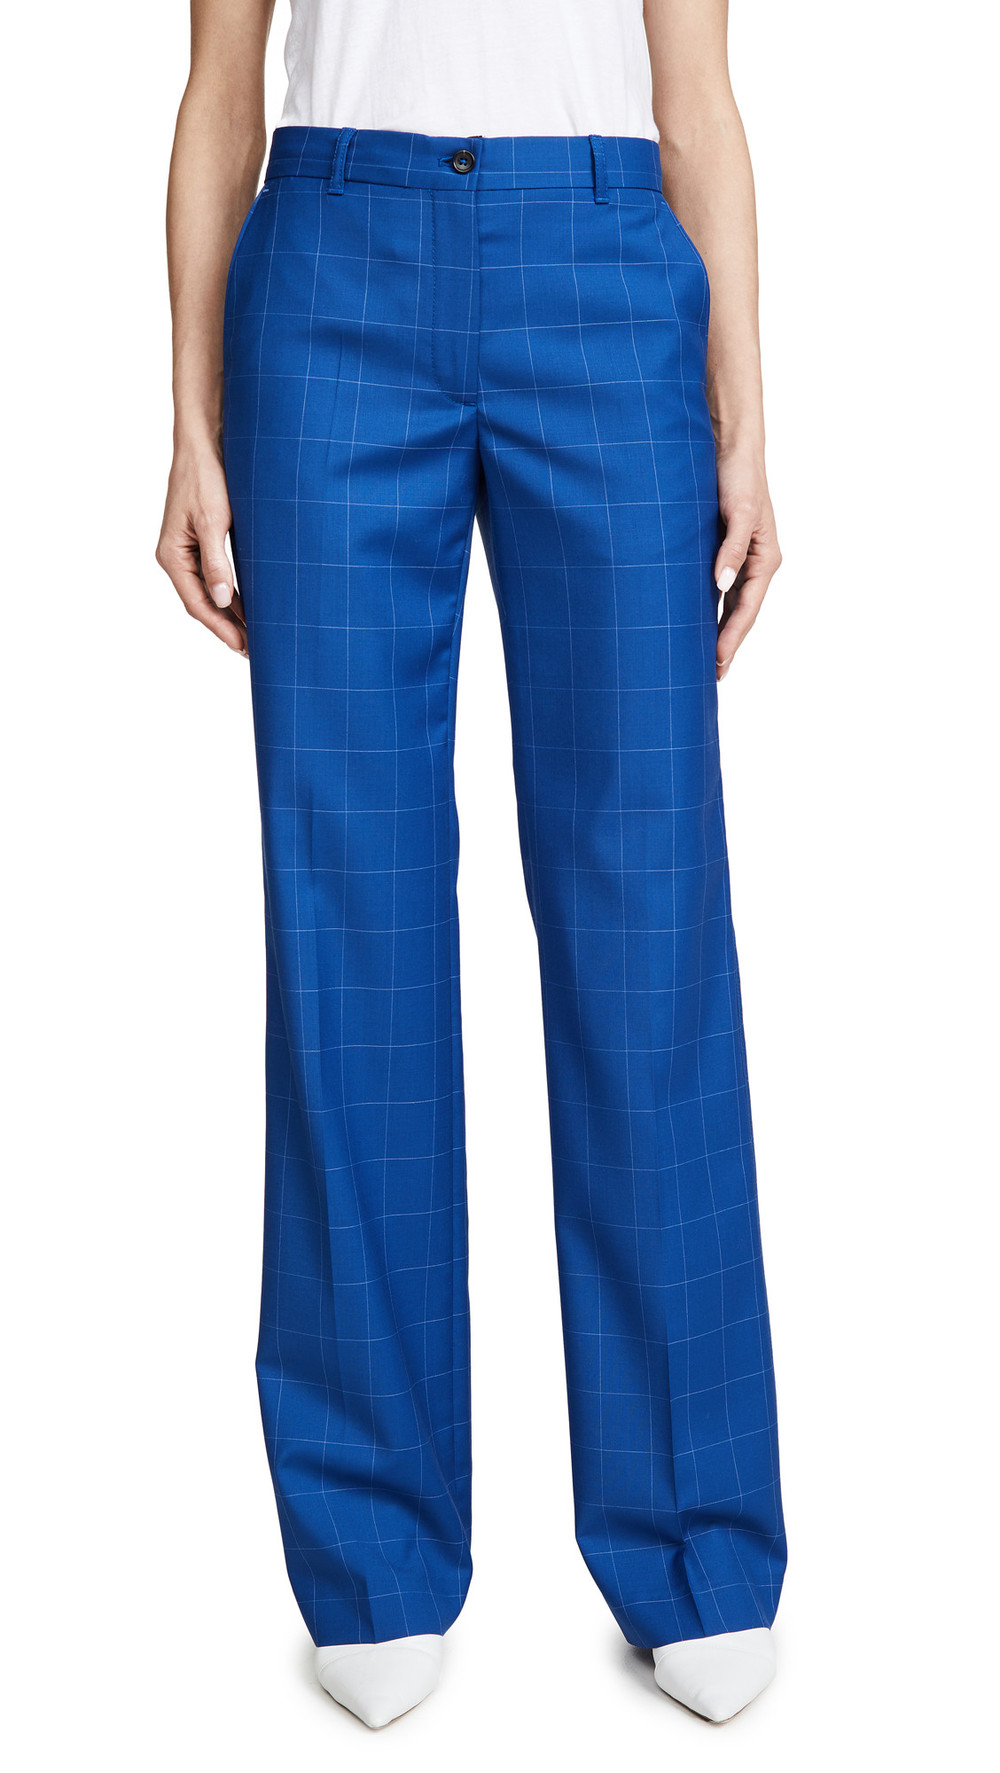 Paul Smith Windowpane Plaid Trousers in blue